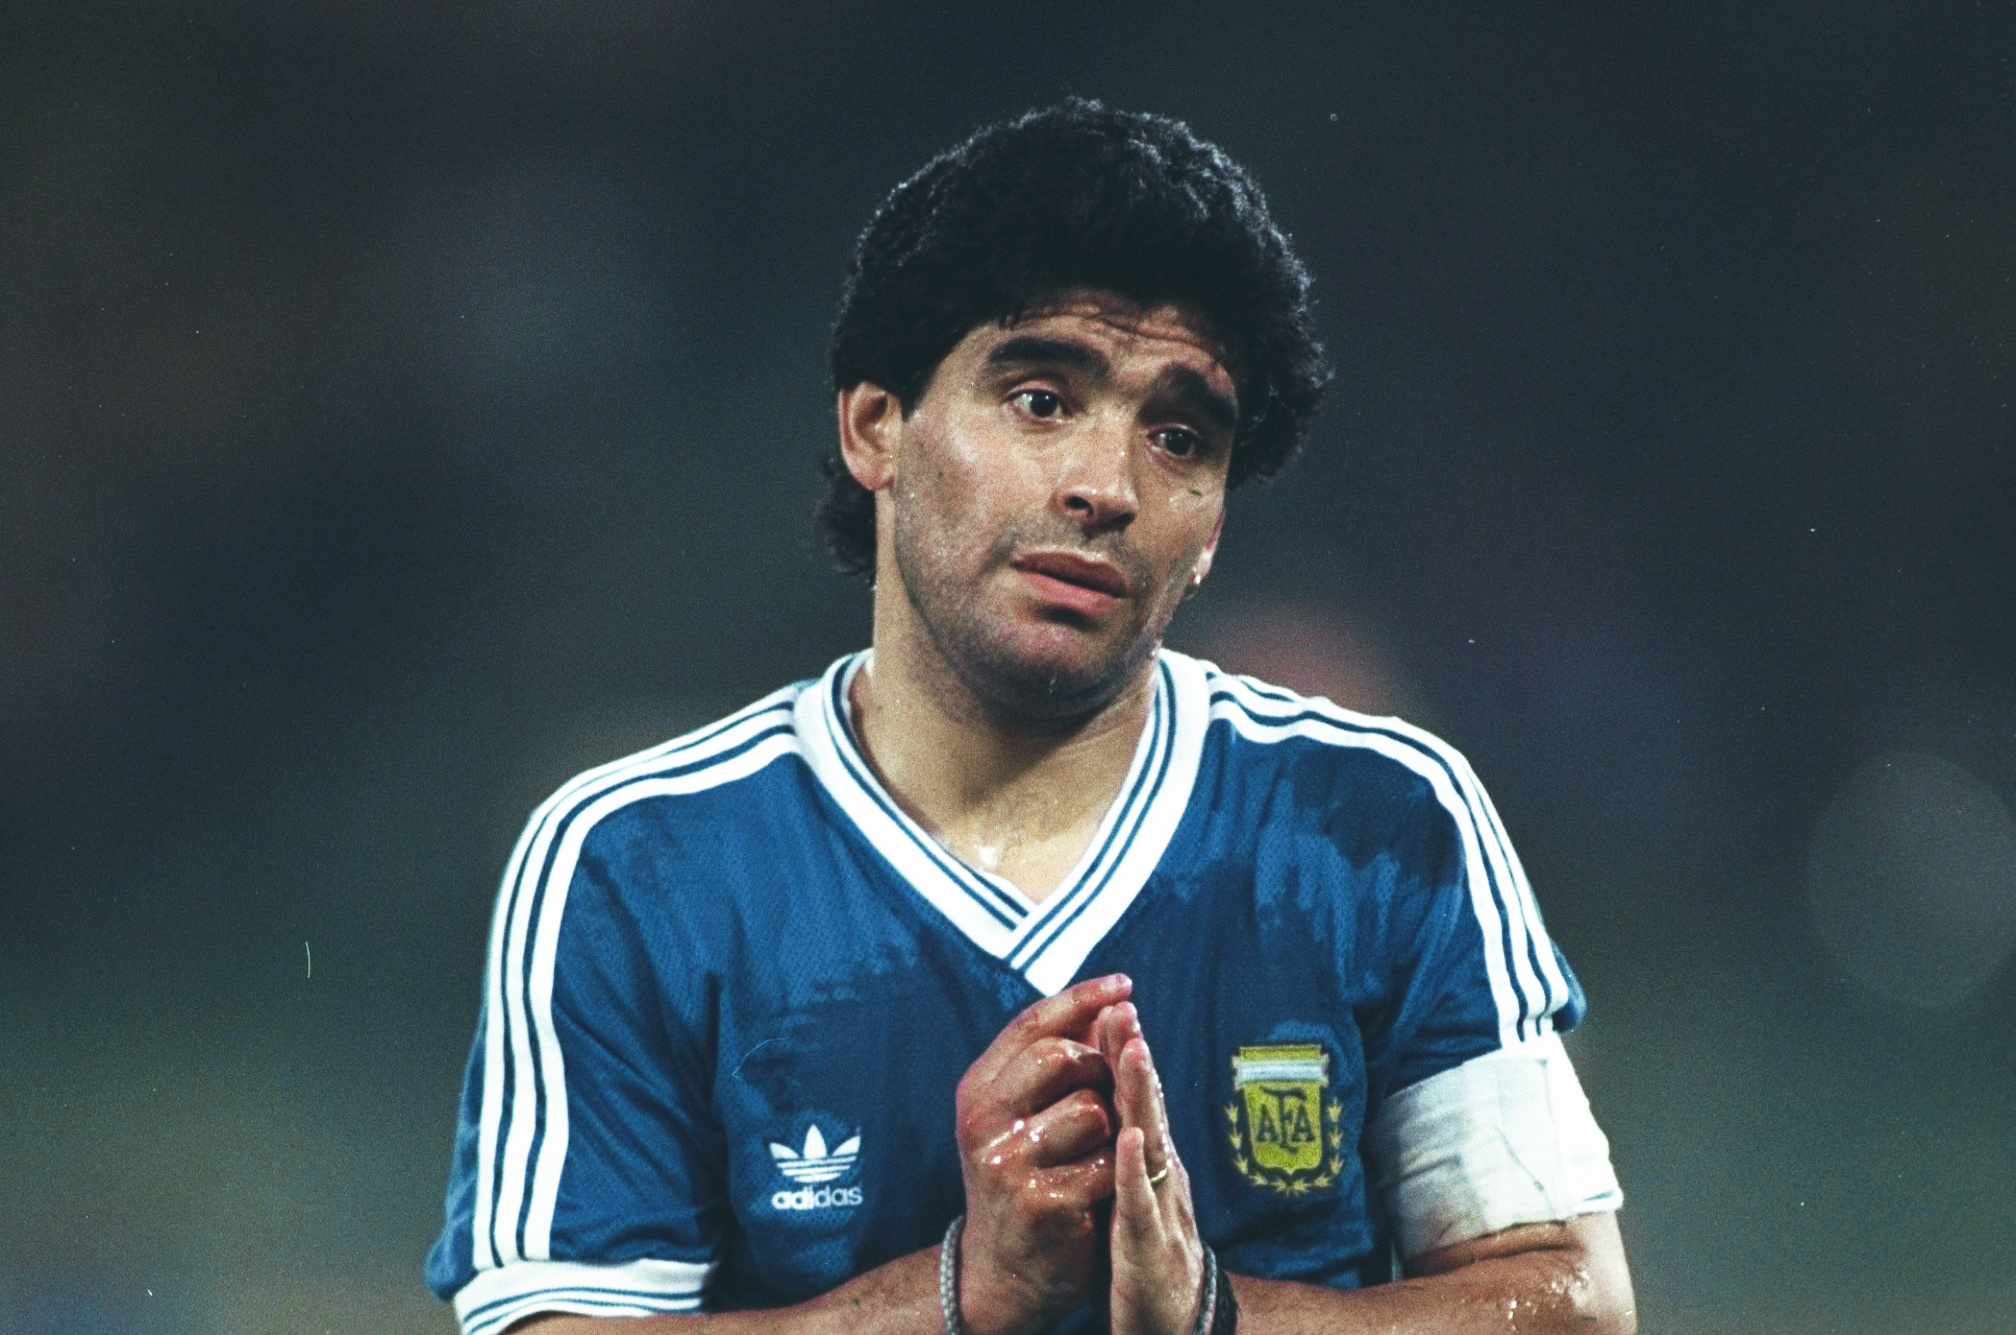 diego maradona at world cup 1990 the weeping